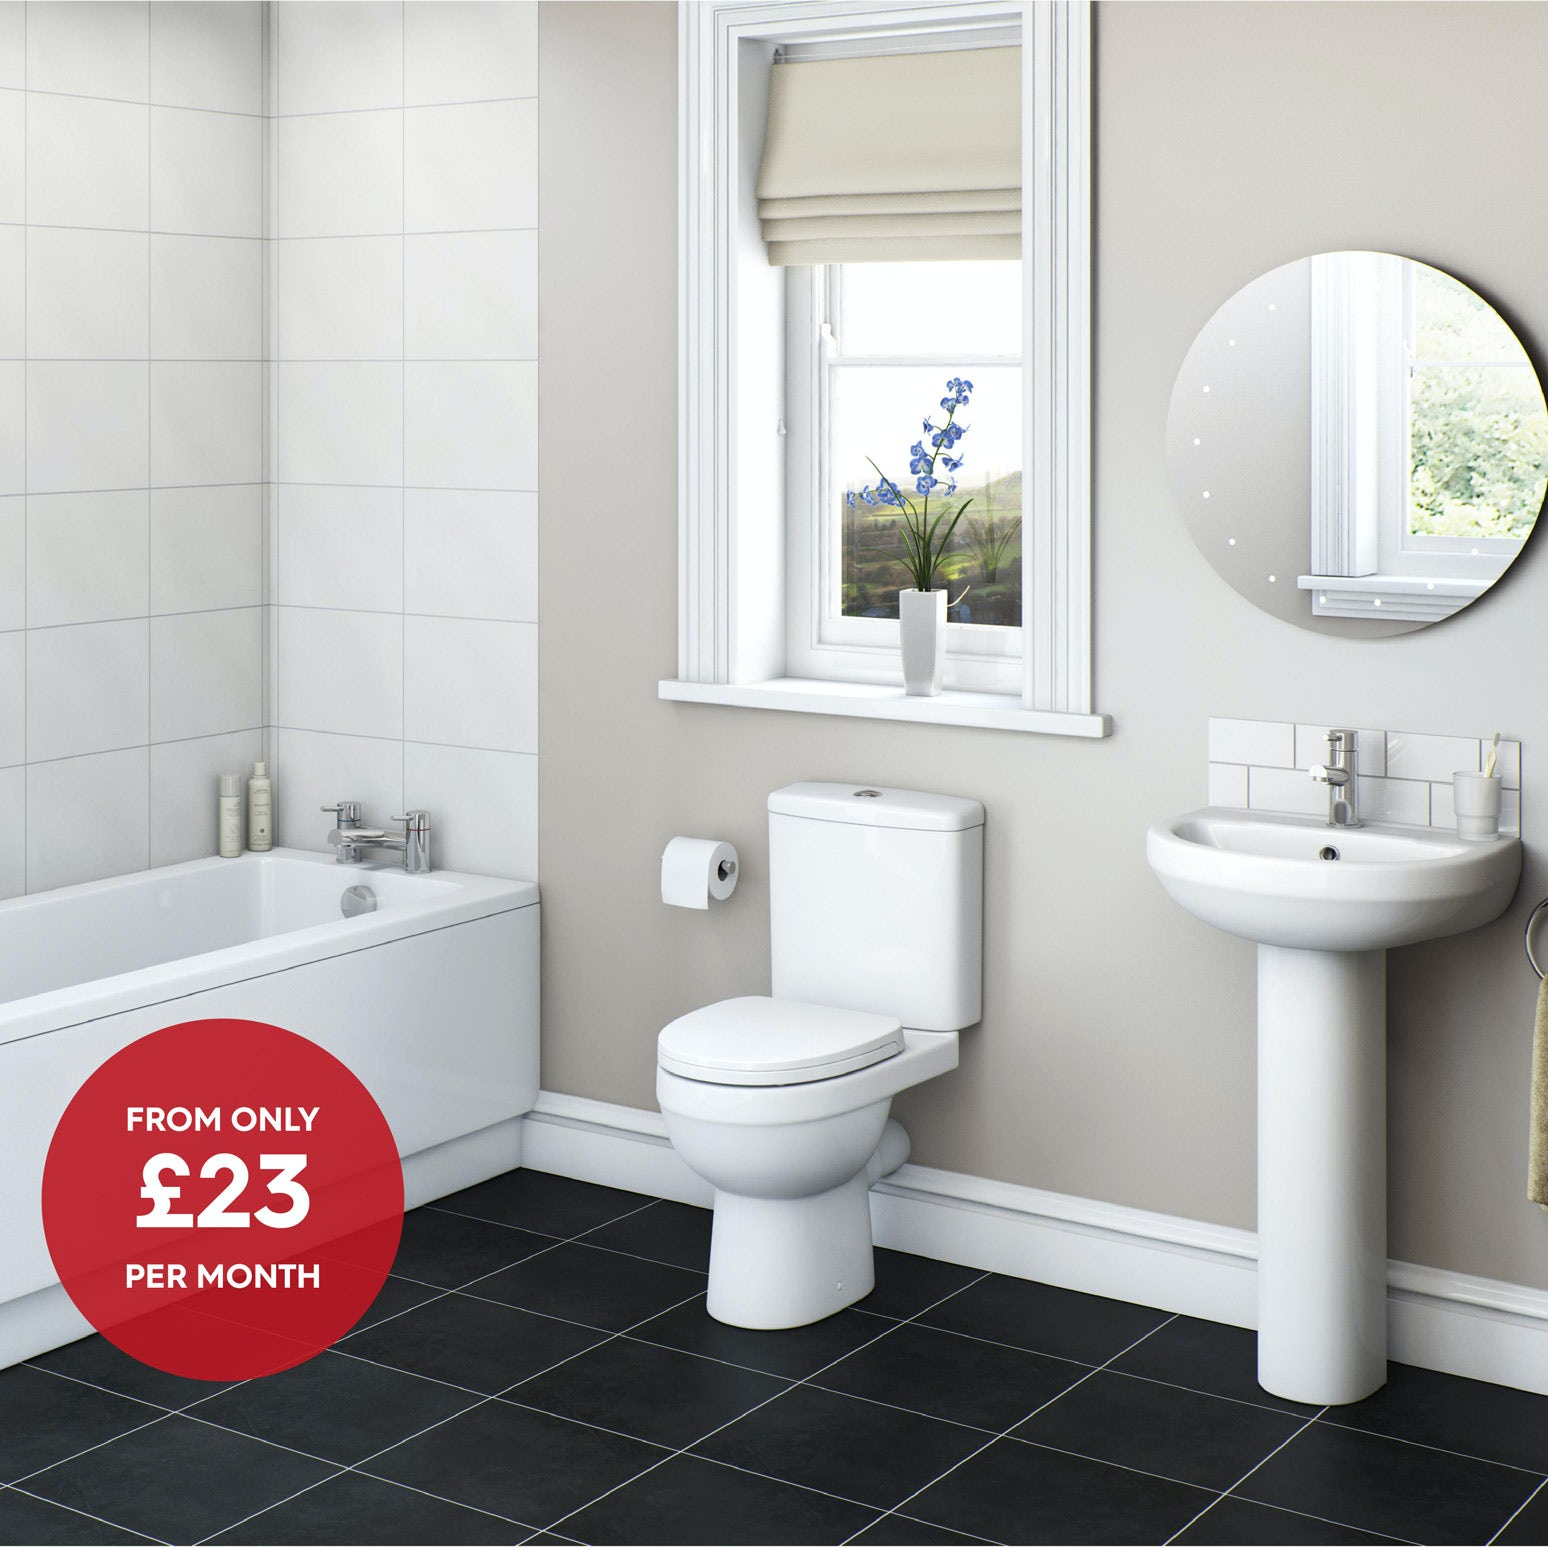 Orchard Eden complete bathroom suite with straight bath